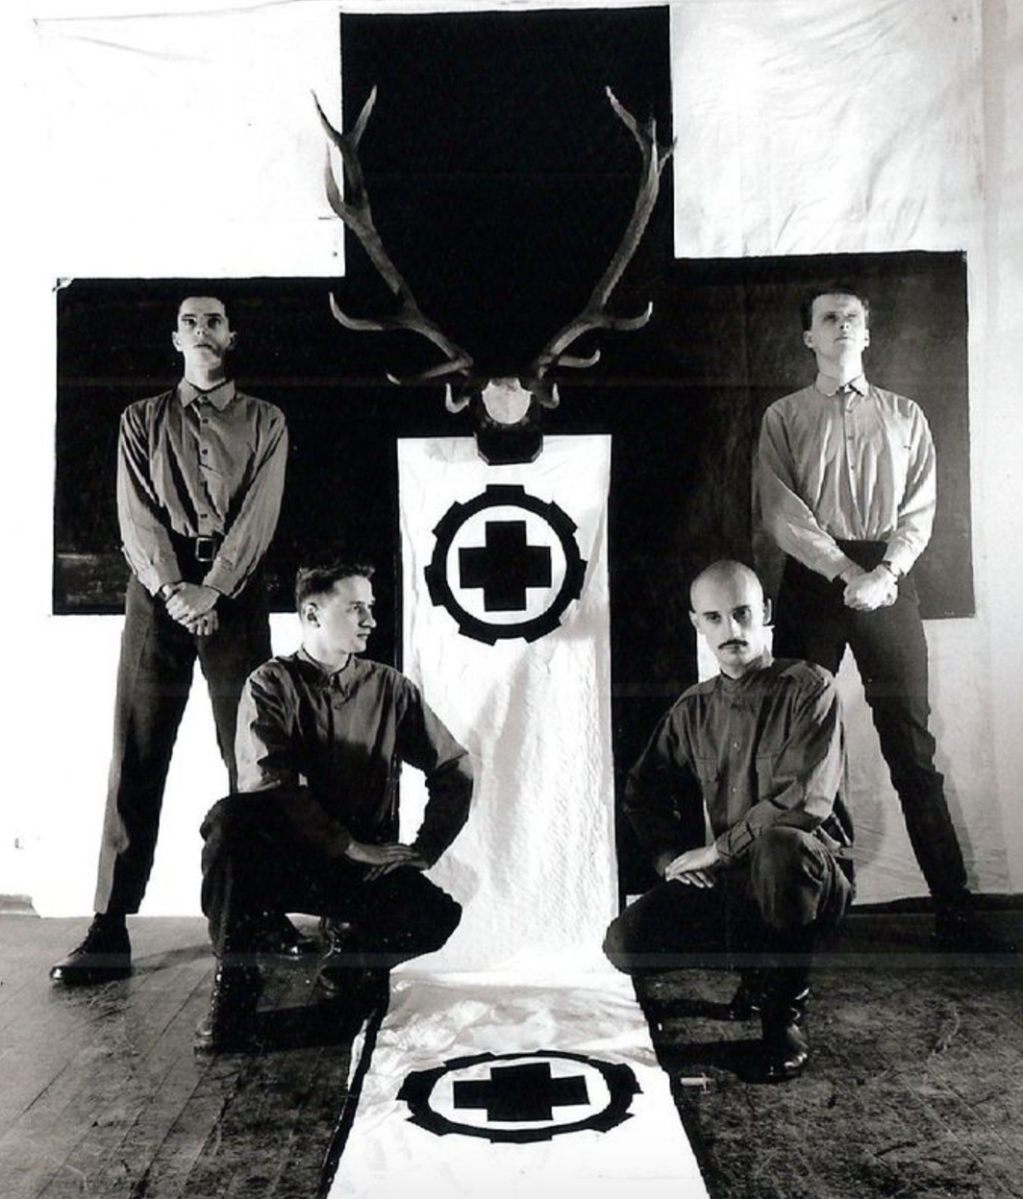 Gebert Einer Nation: How Laibach turned Queen's One Vision into a totalitarian anthem (1987)